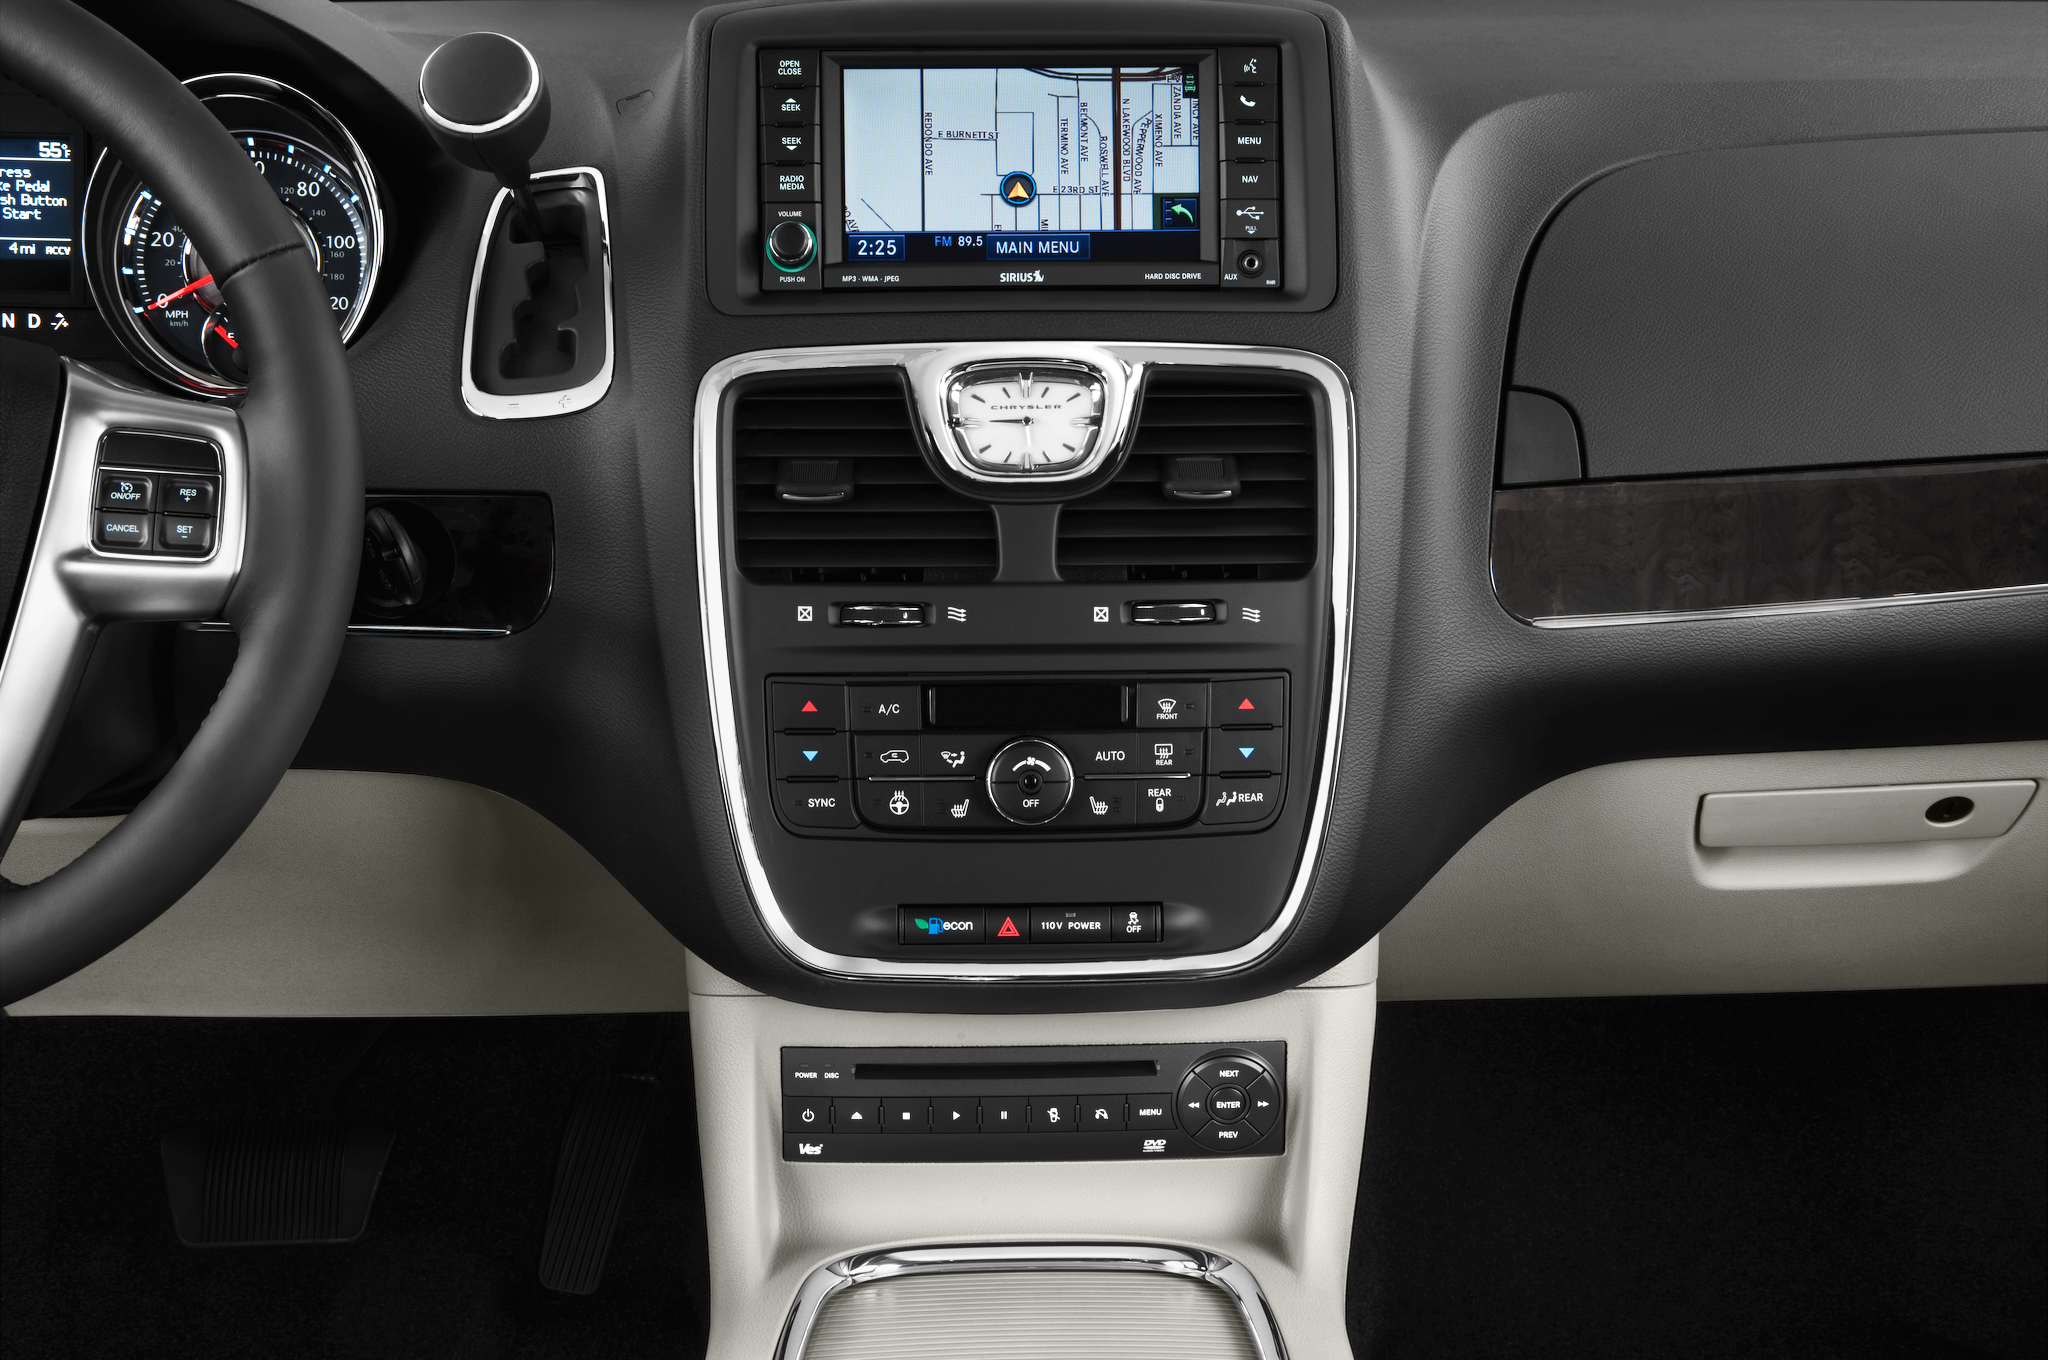 2011 chrysler town country receives new look interior and engine. Black Bedroom Furniture Sets. Home Design Ideas